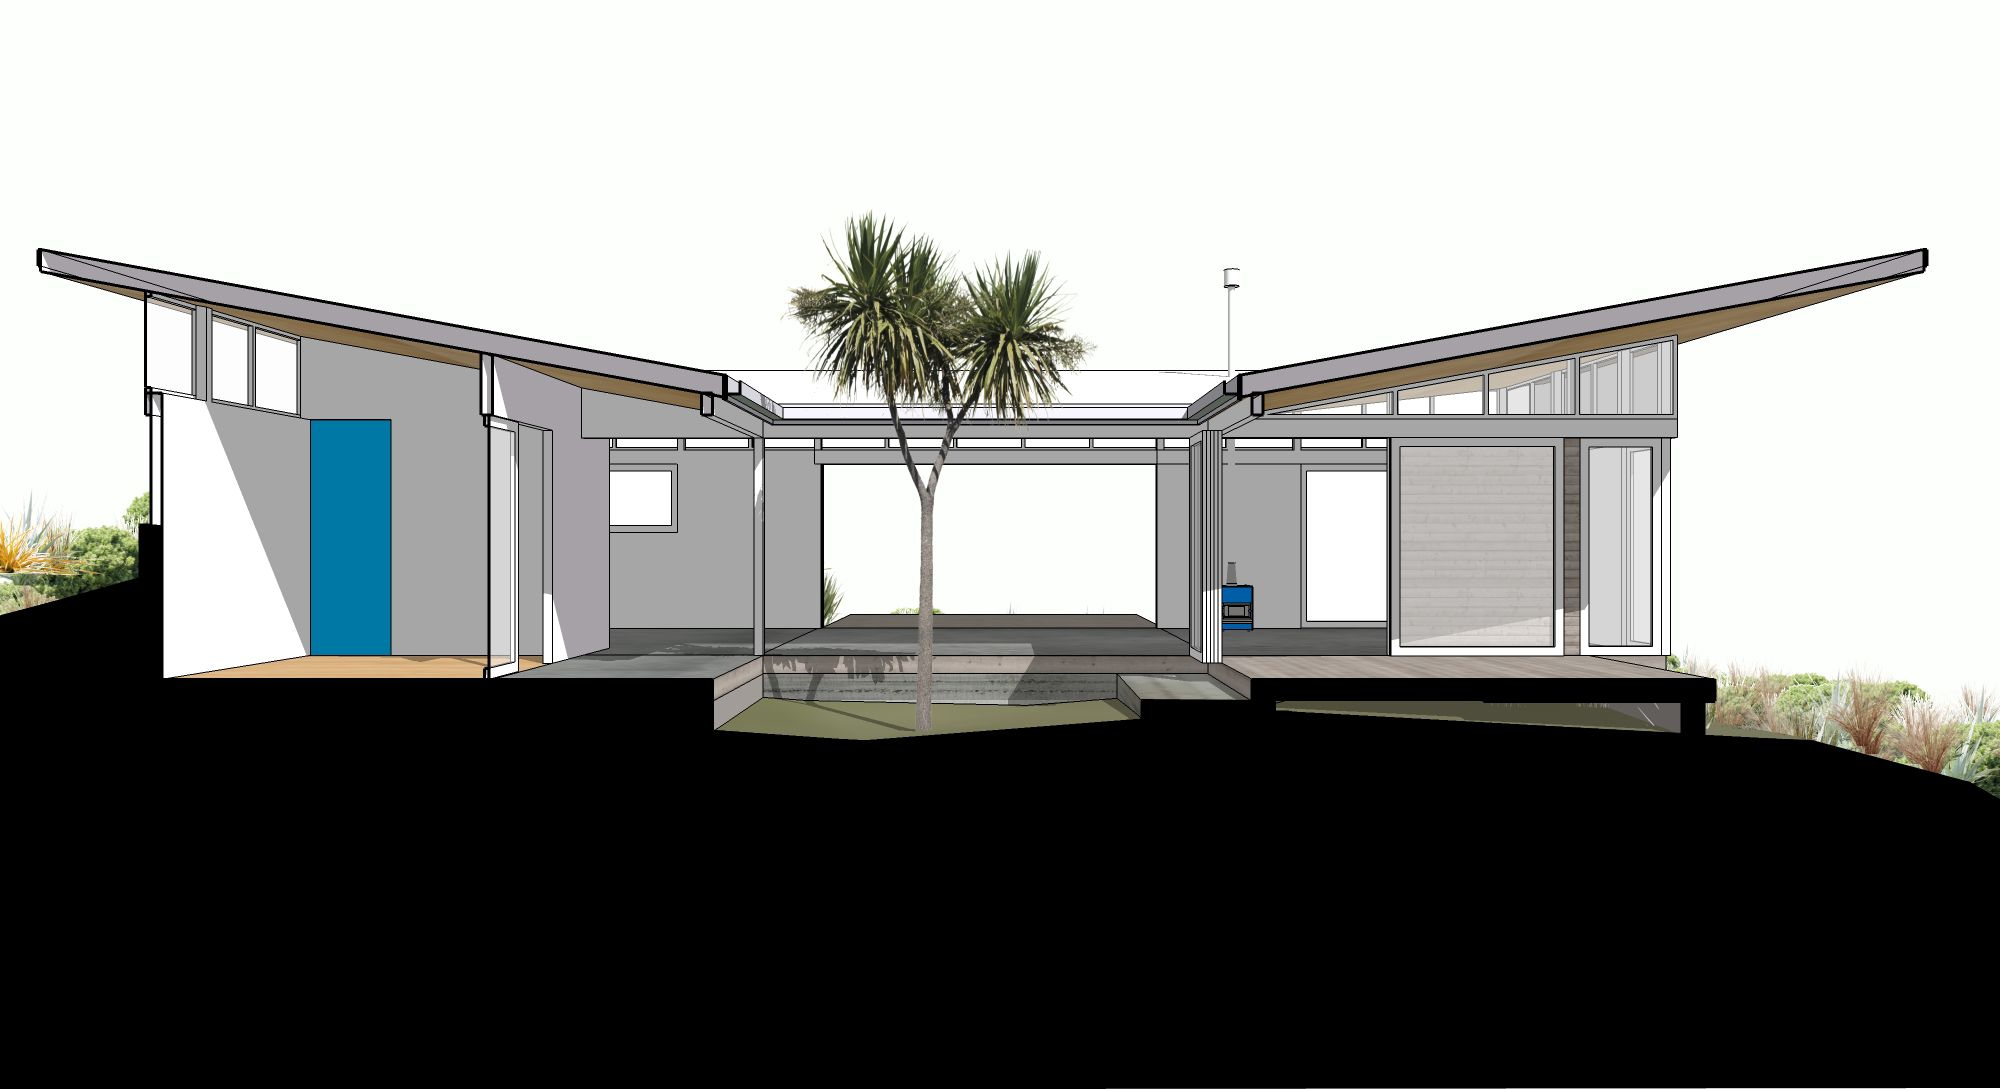 Te Horo houses - PATCH WORK ARCHITECTURE